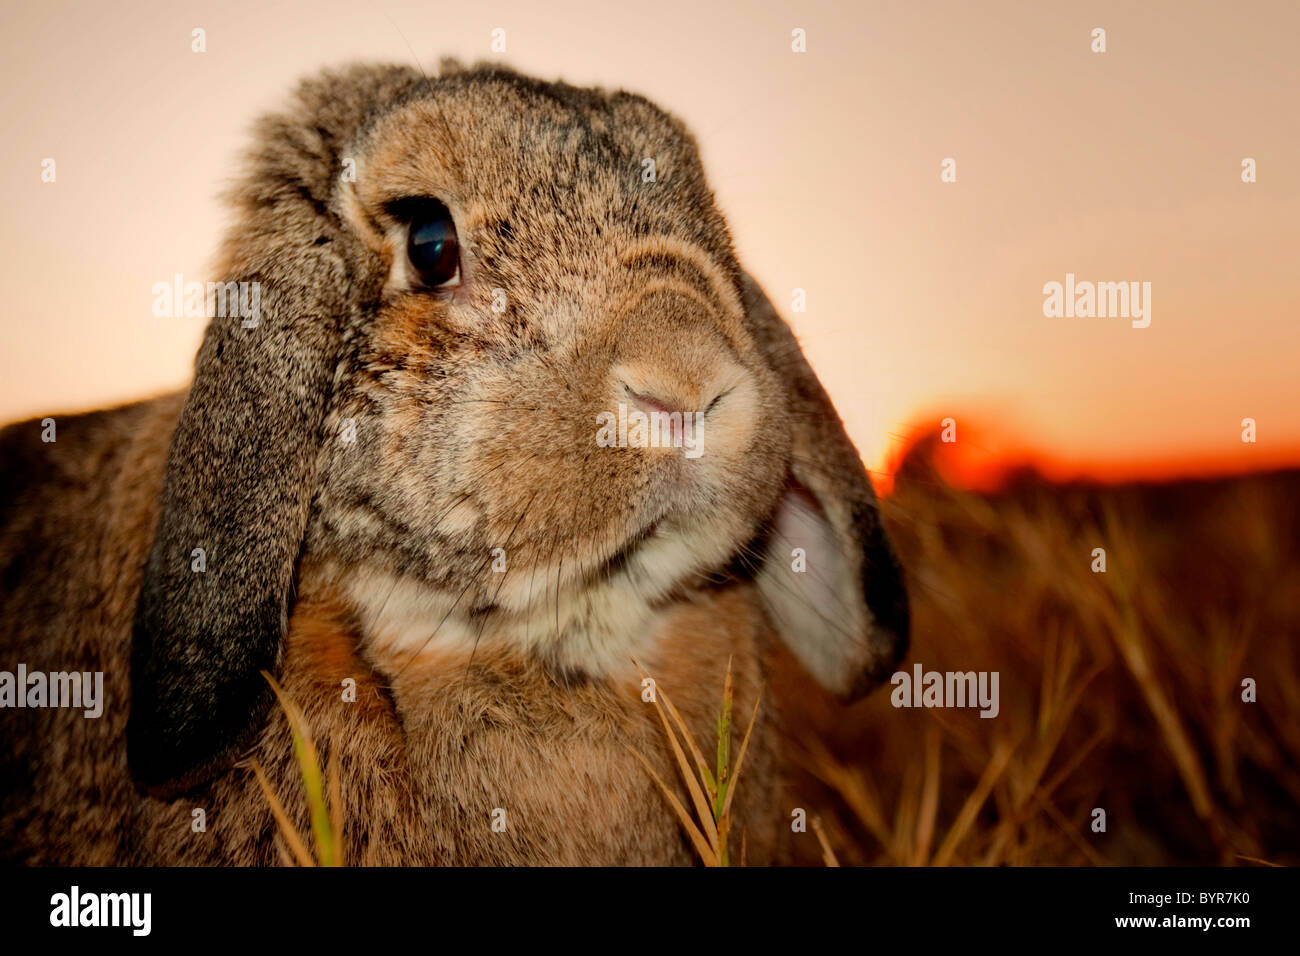 Close-up of rabbit at sunset - Stock Image